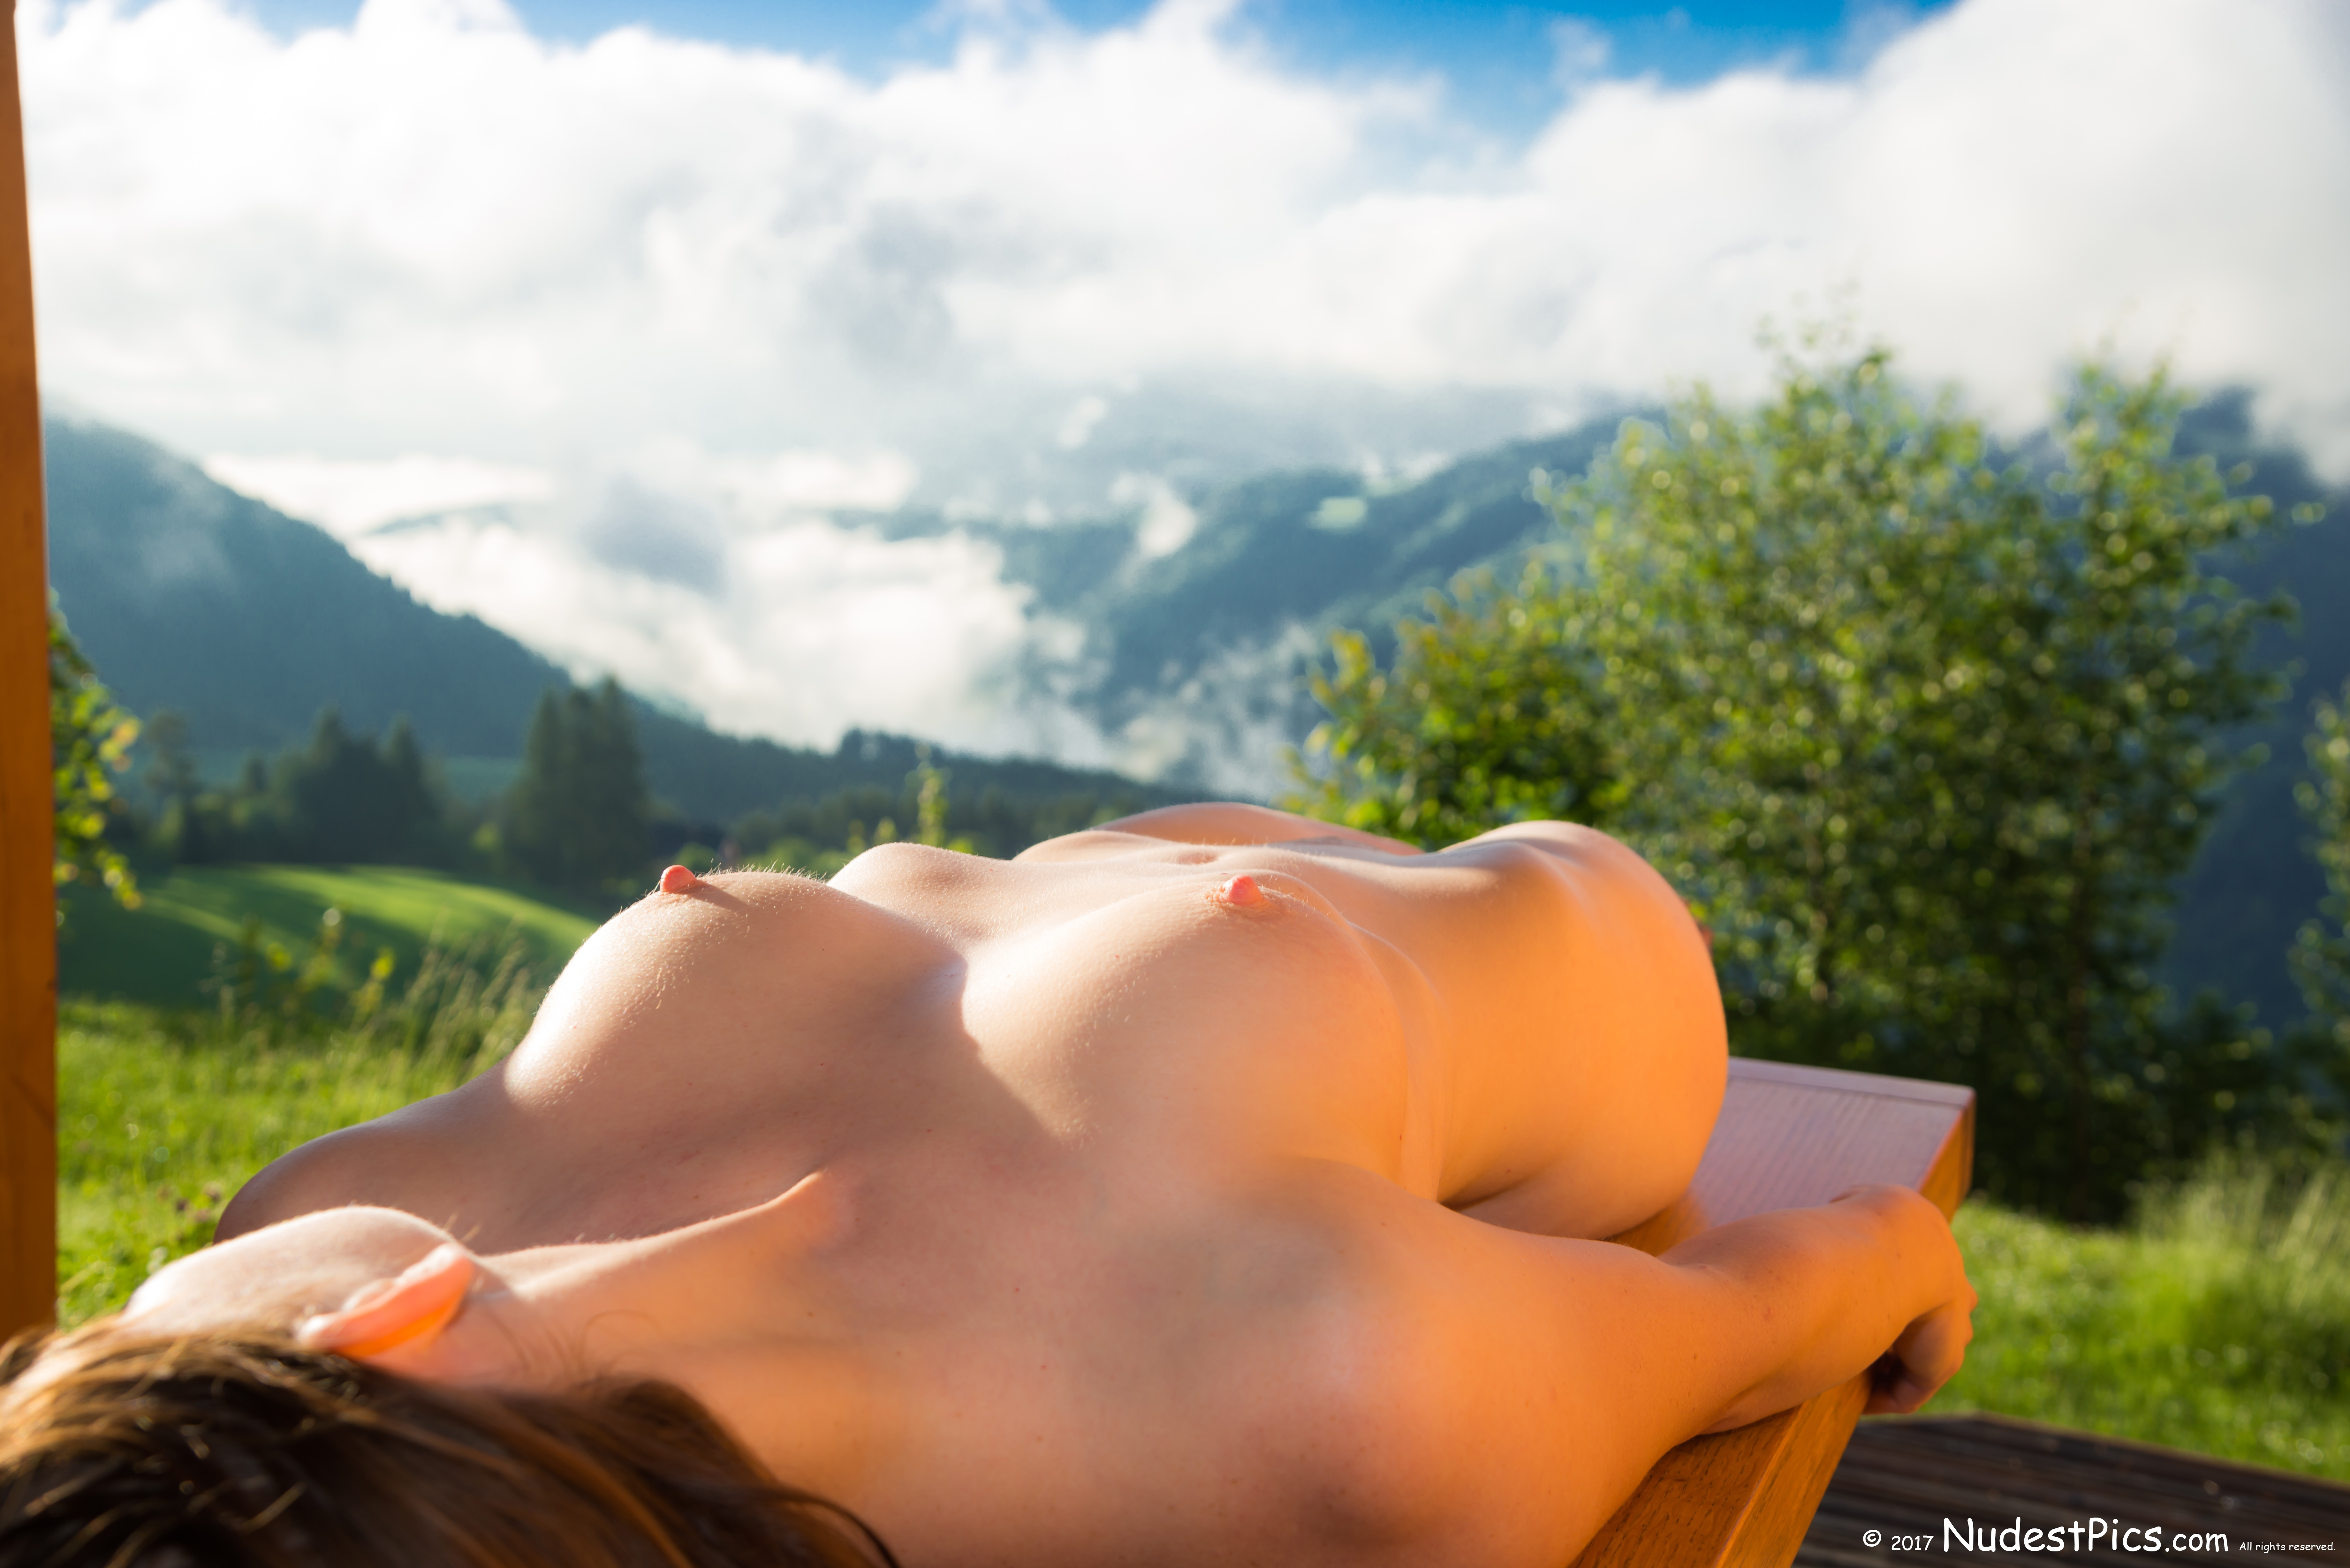 The Golden Nude Girl Sunbathing in Slovenian Mountains HD